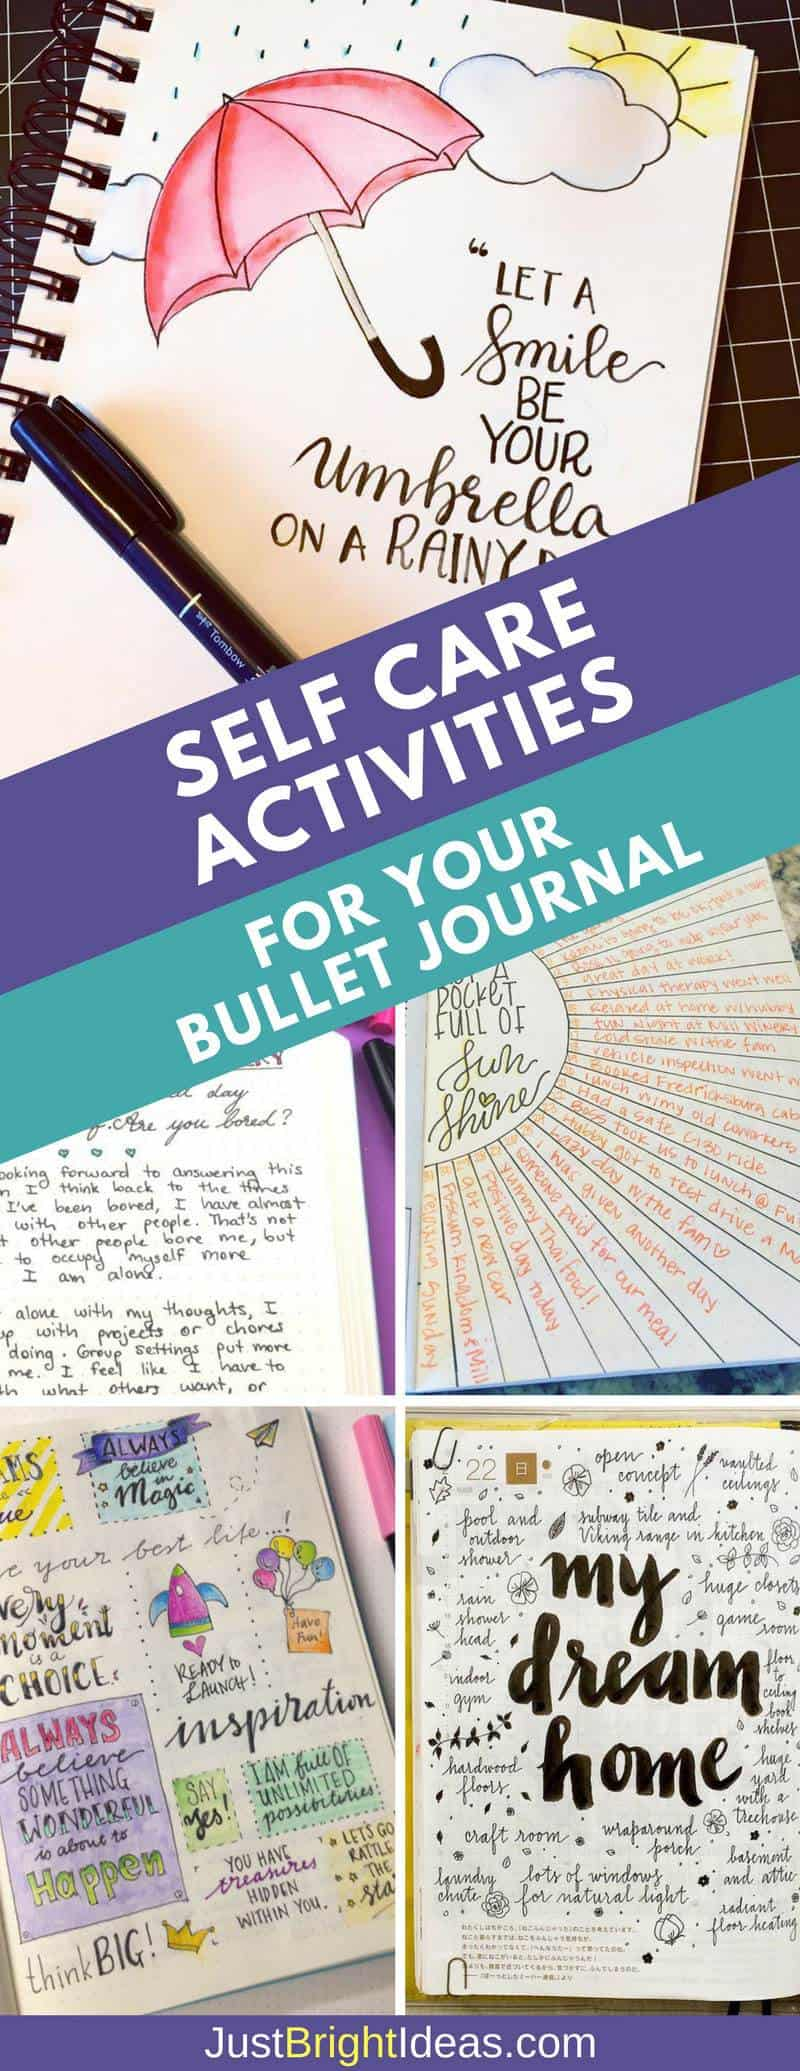 Examples of Self Care Activities for Your Bullet Journal